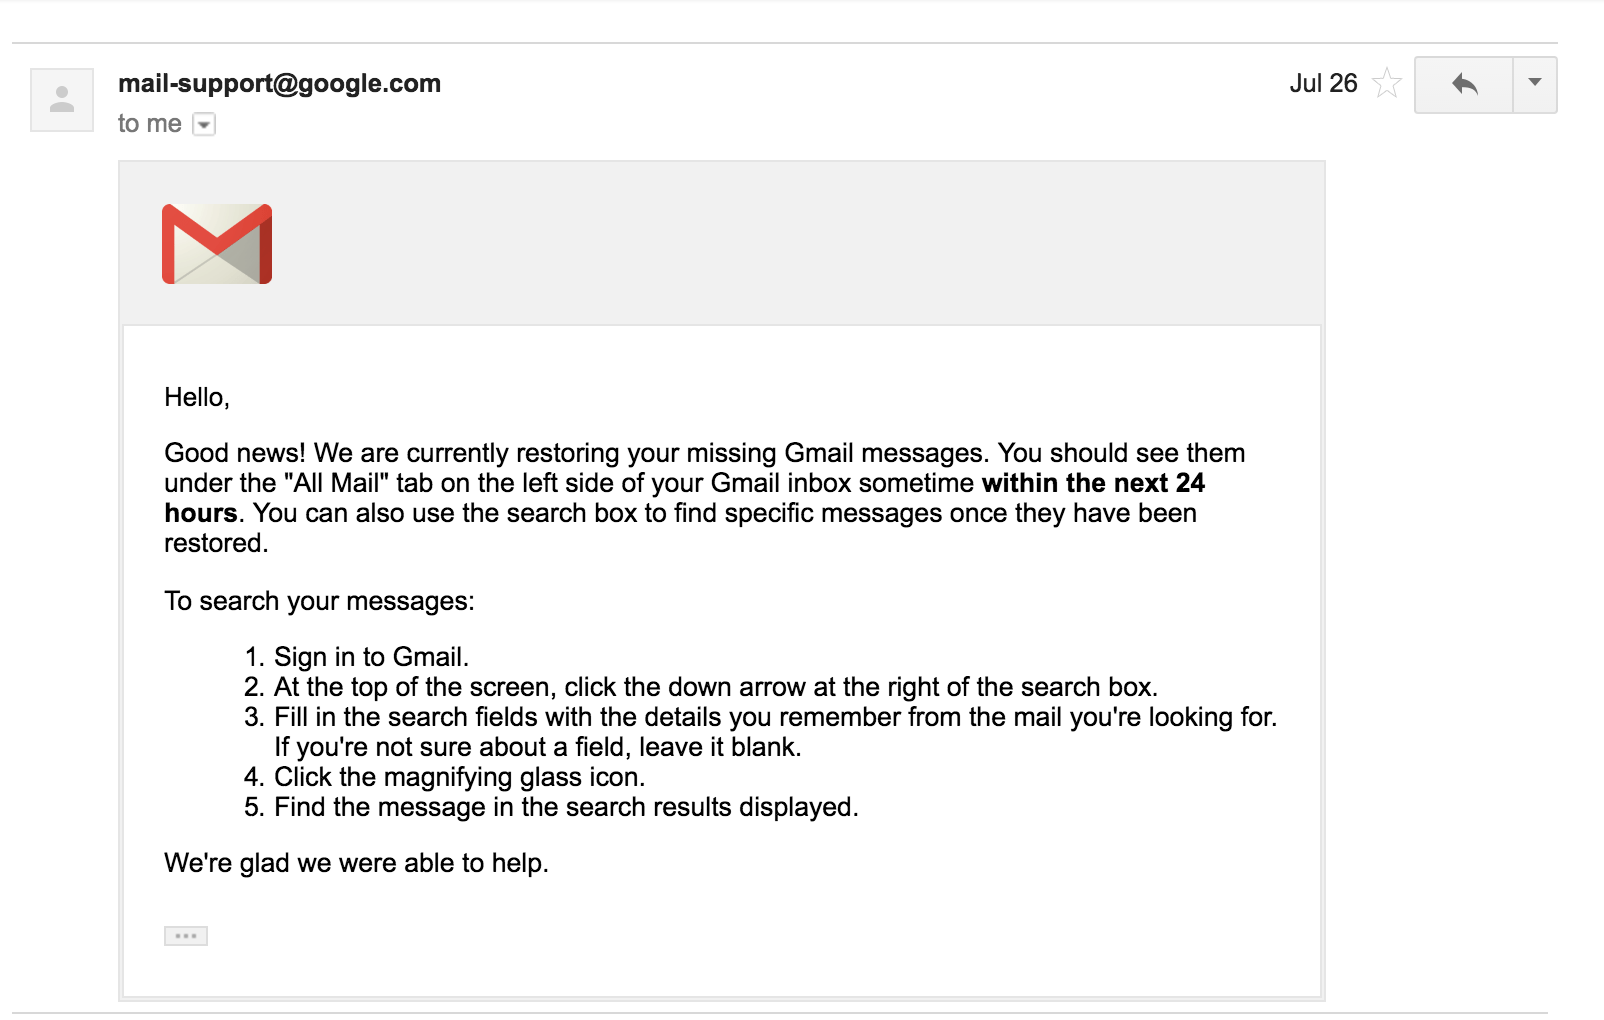 Last Reply from Google Support